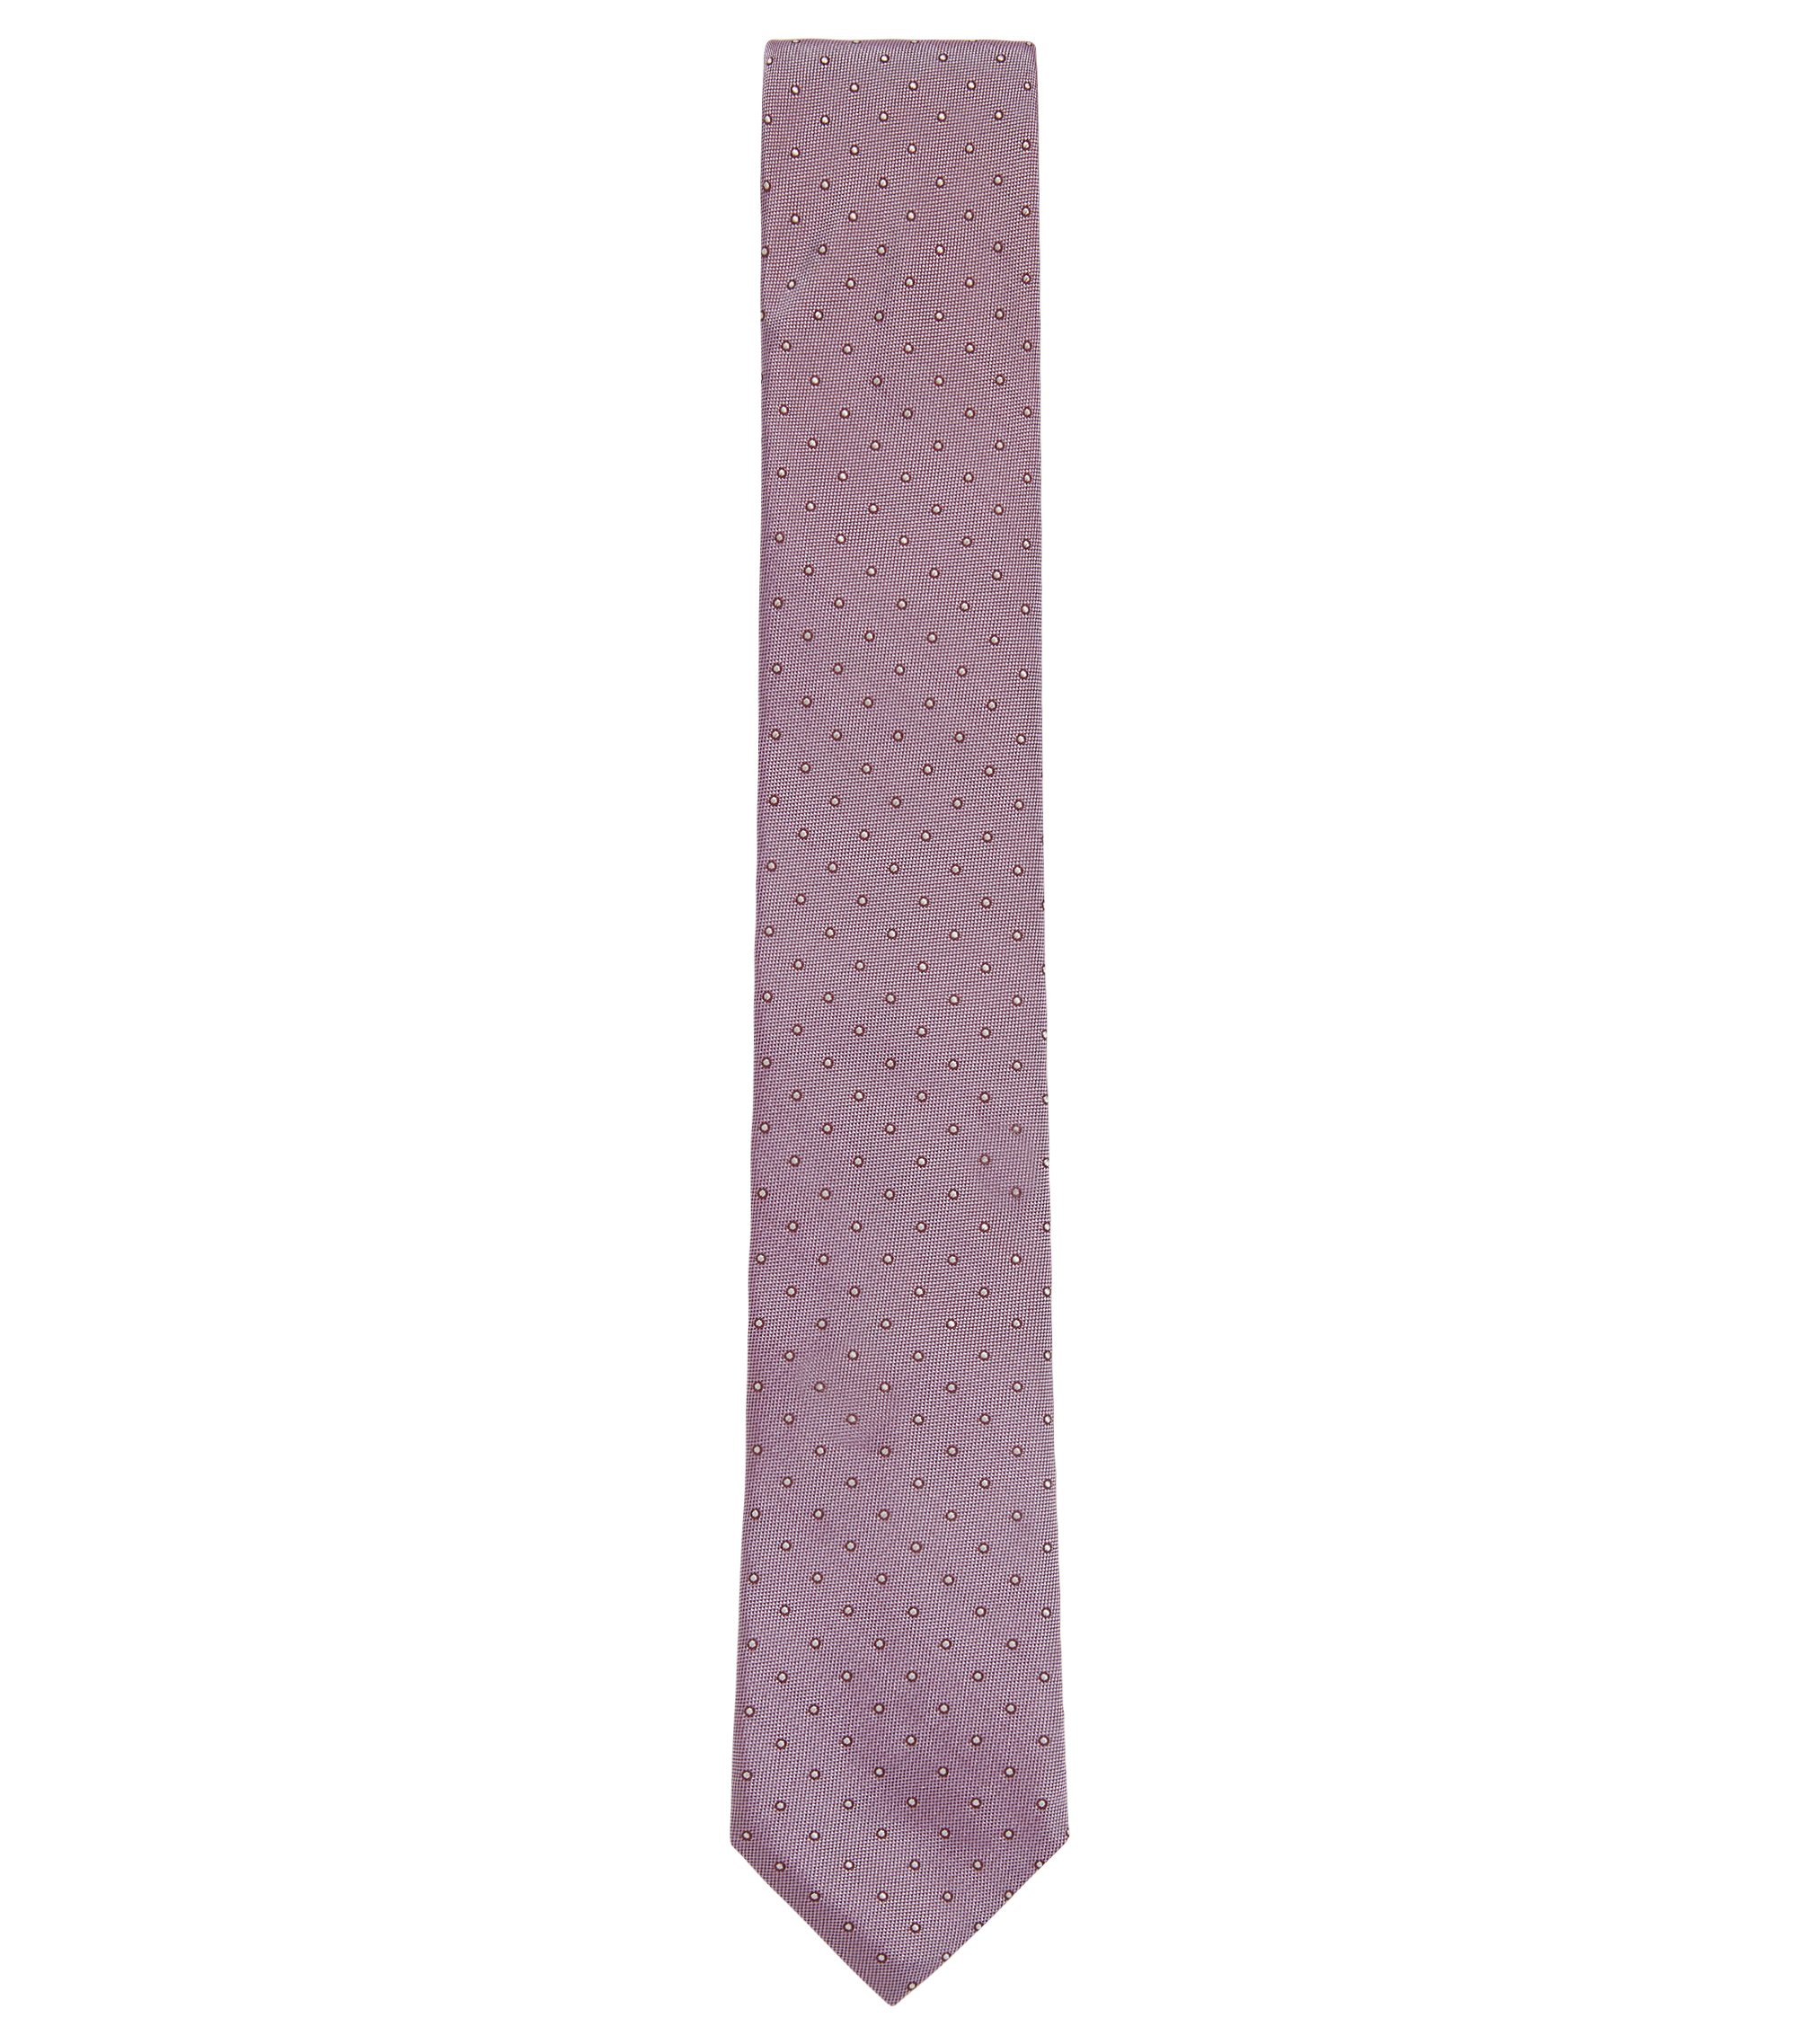 Italian-made patterned tie in silk jacquard, light pink